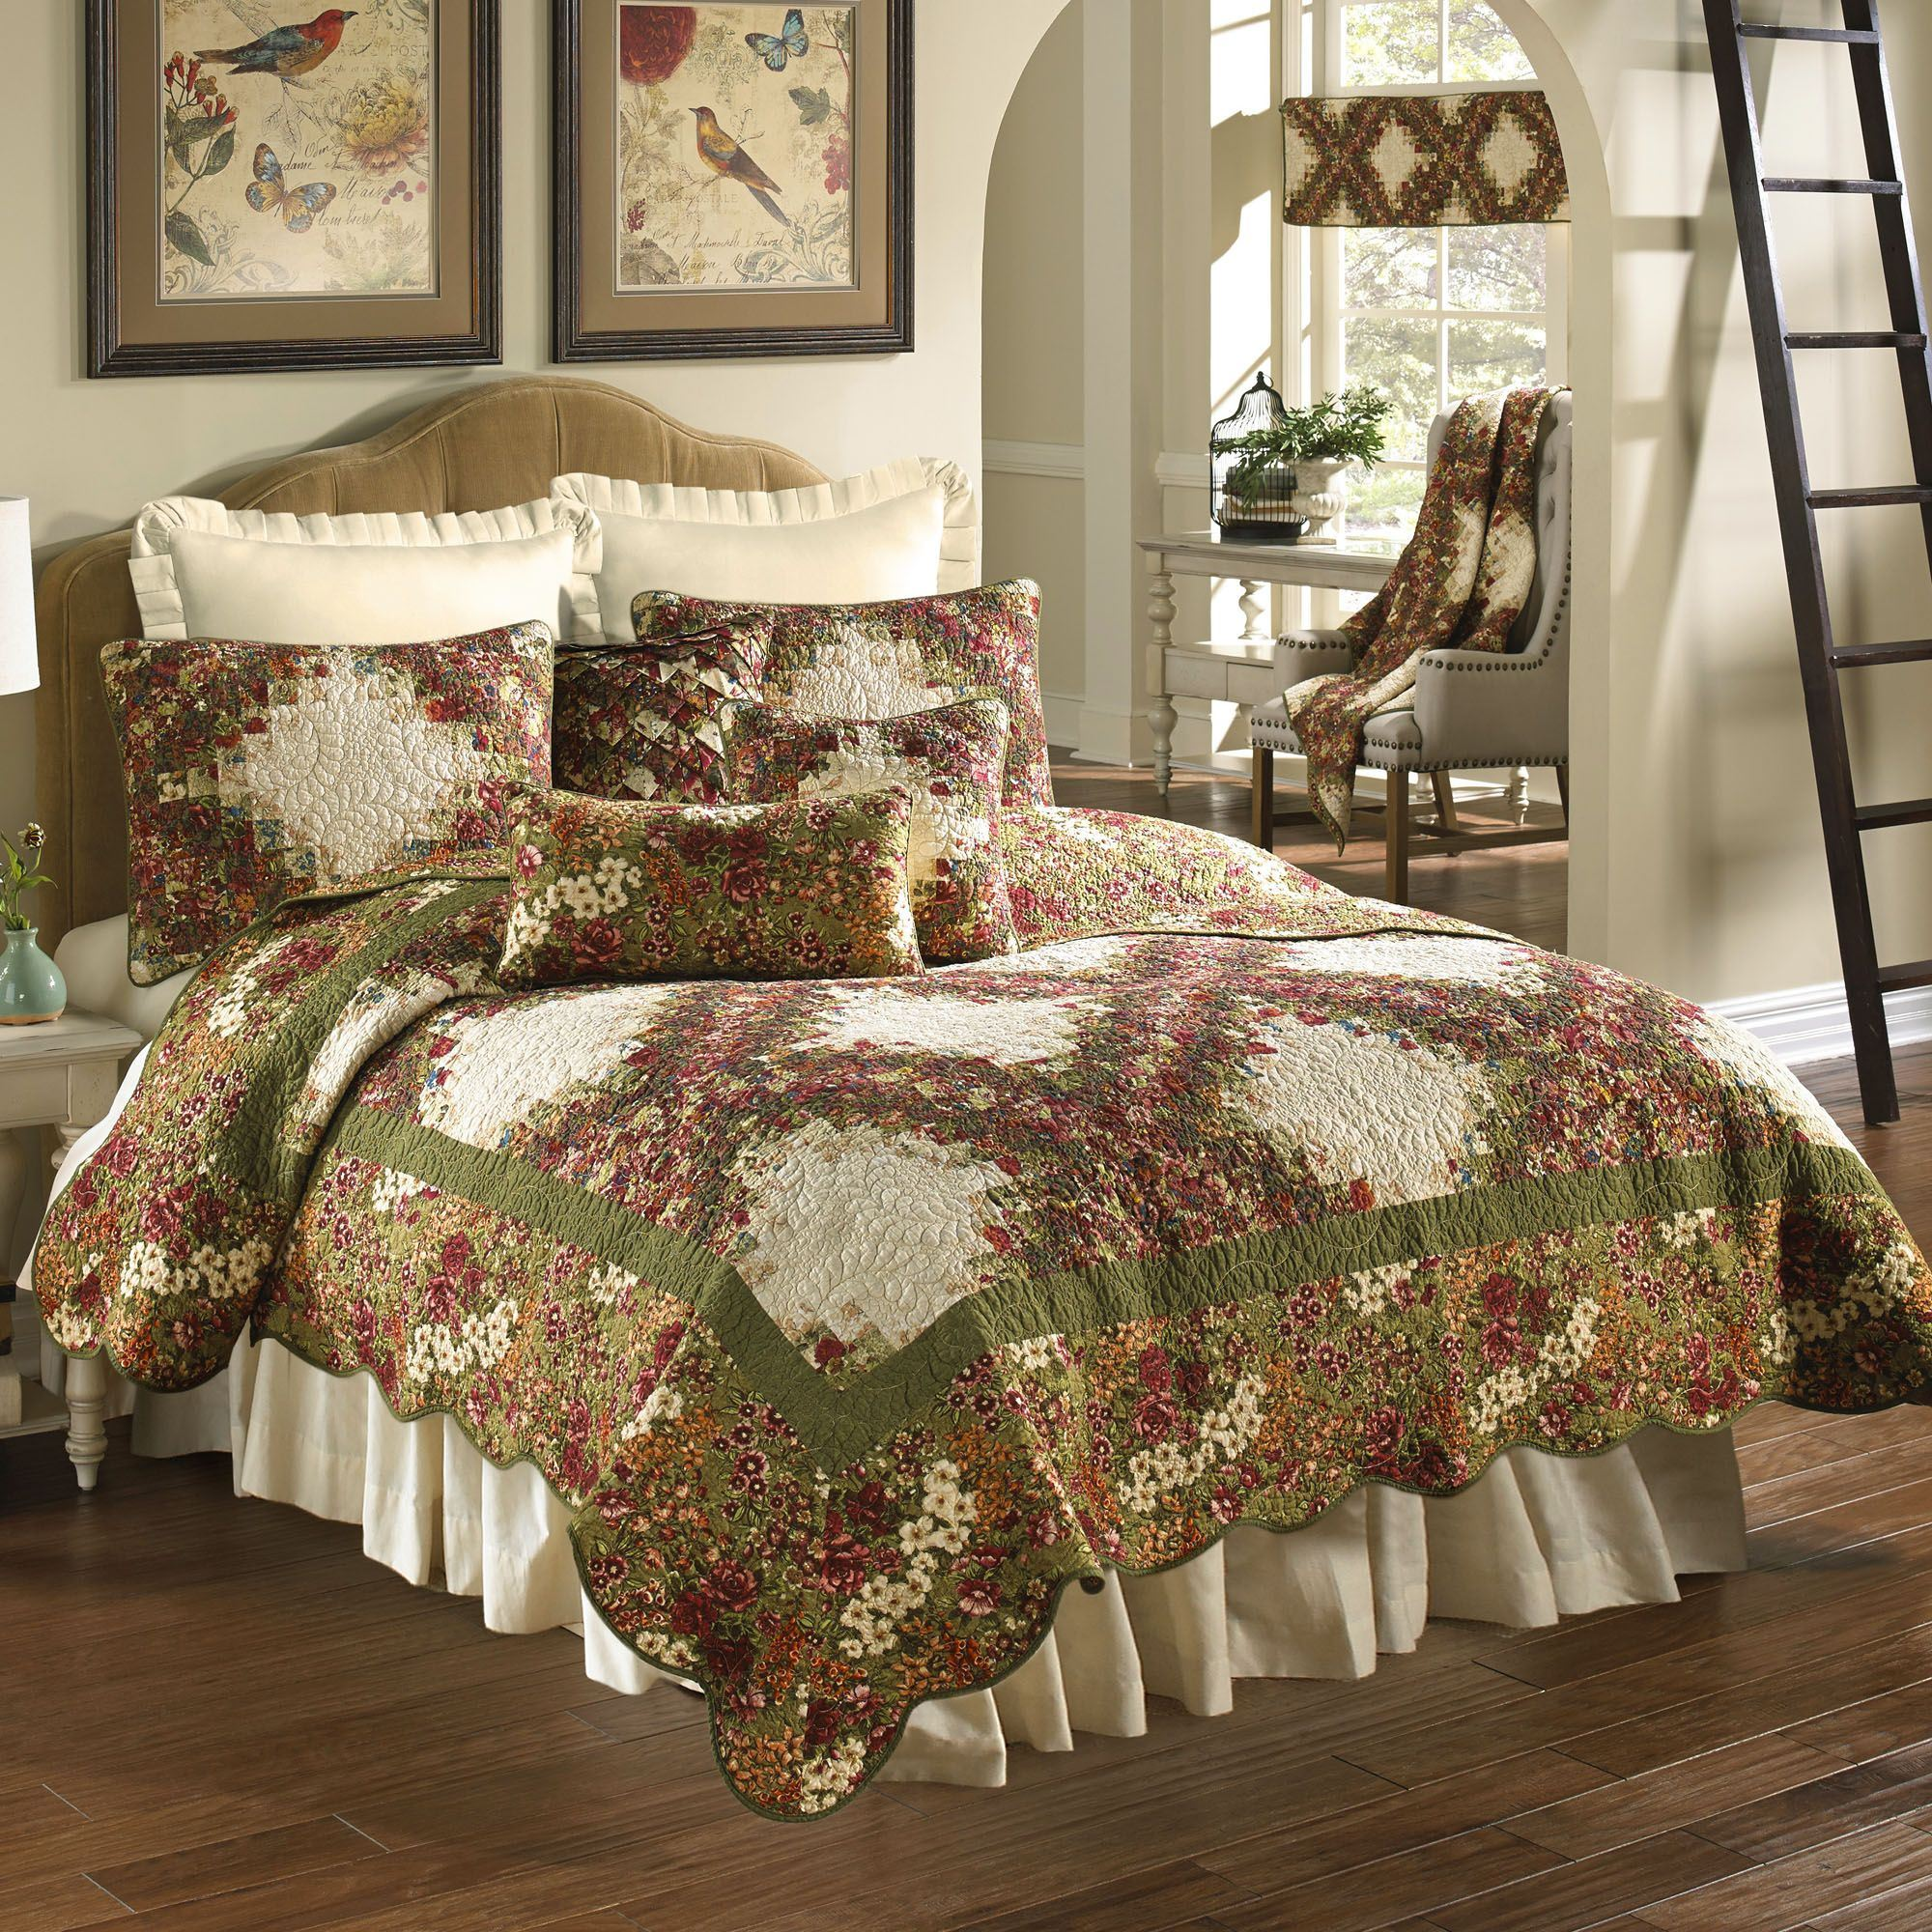 Watercolor Irish Chain Floral Quilt Bedding By Donna Sharp